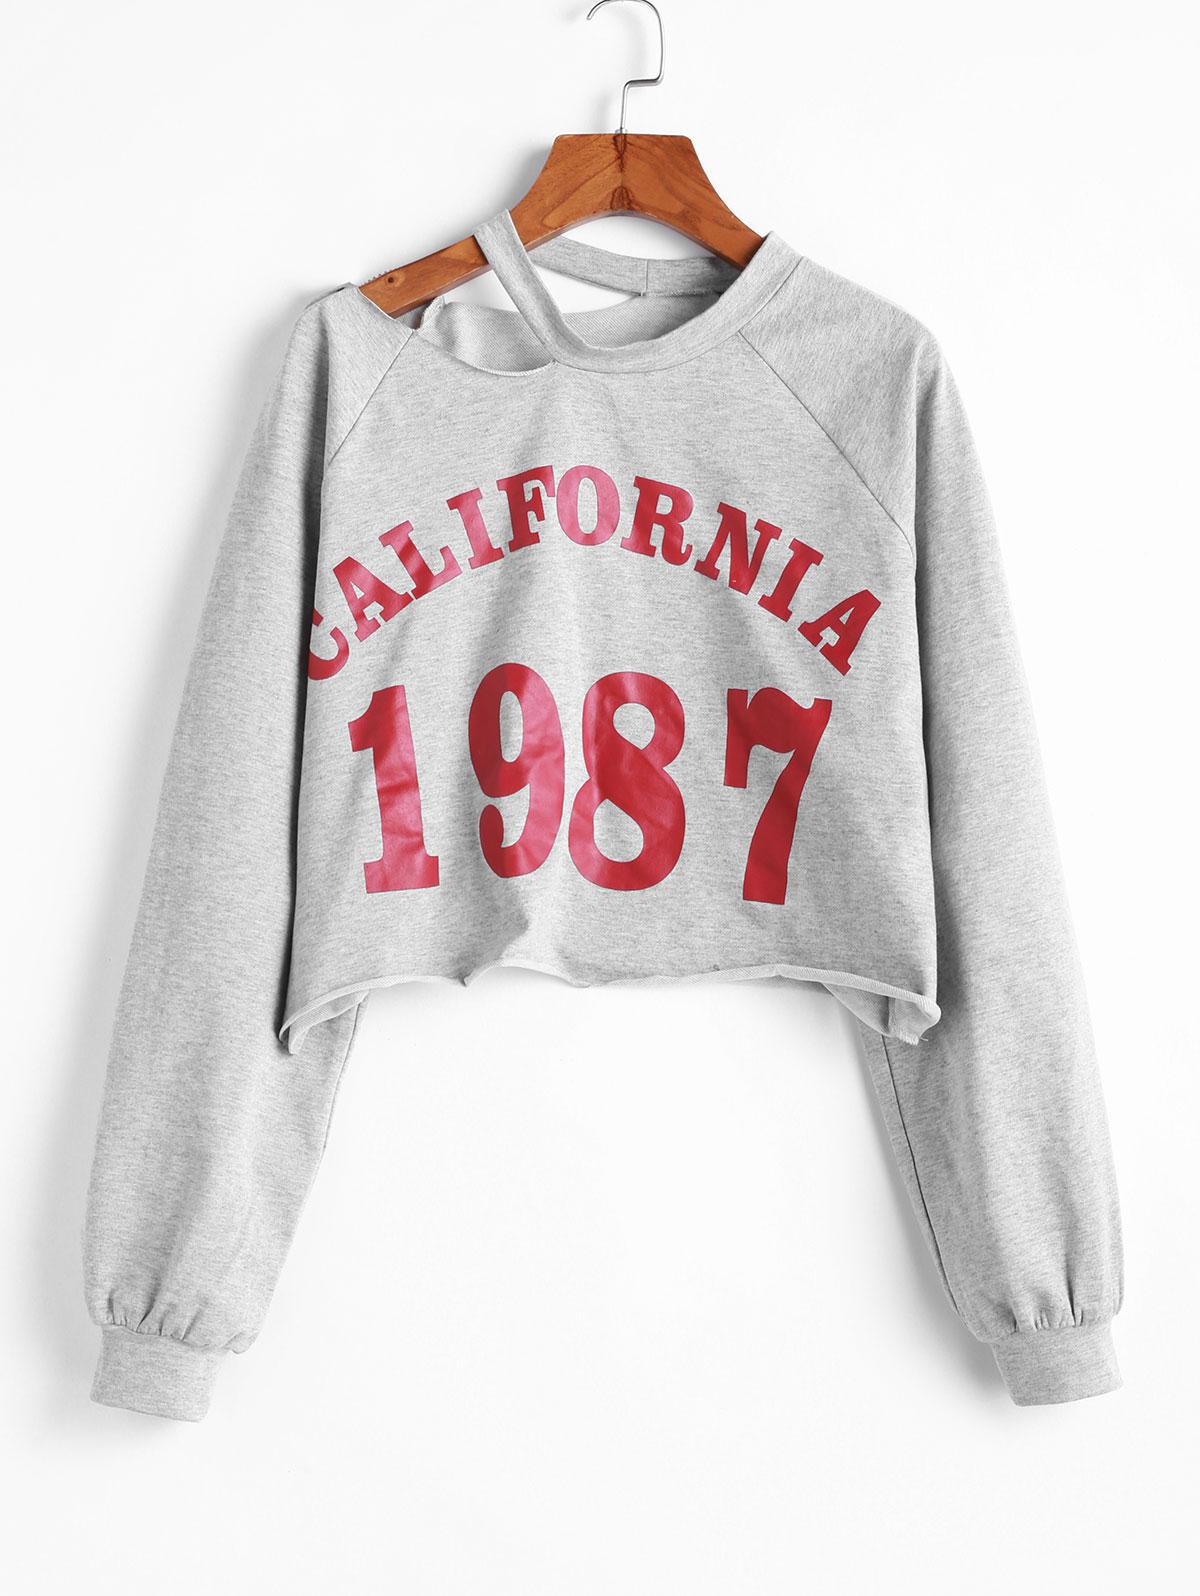 ZAFUL California 1987 Graphic Cut Out Shoulder Cropped Sweatshirt, Light gray